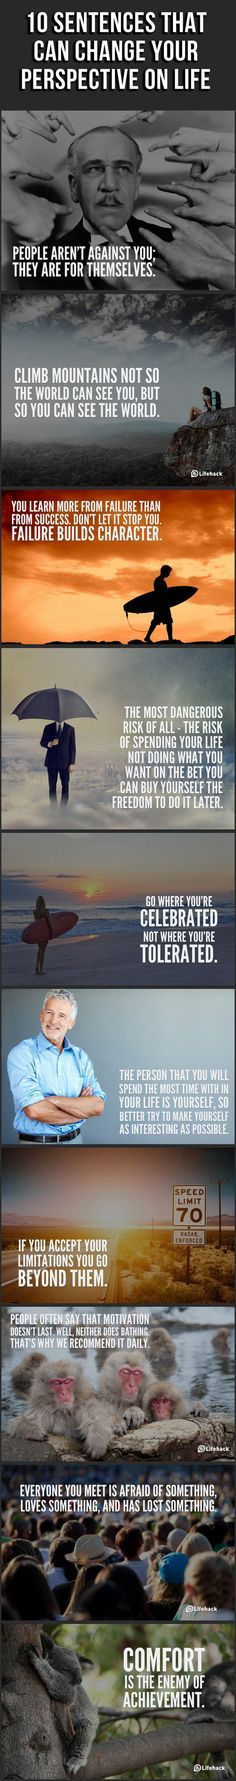 Quotes to live your life by. I especially like the first one. People aren't against you, they are for themselves.